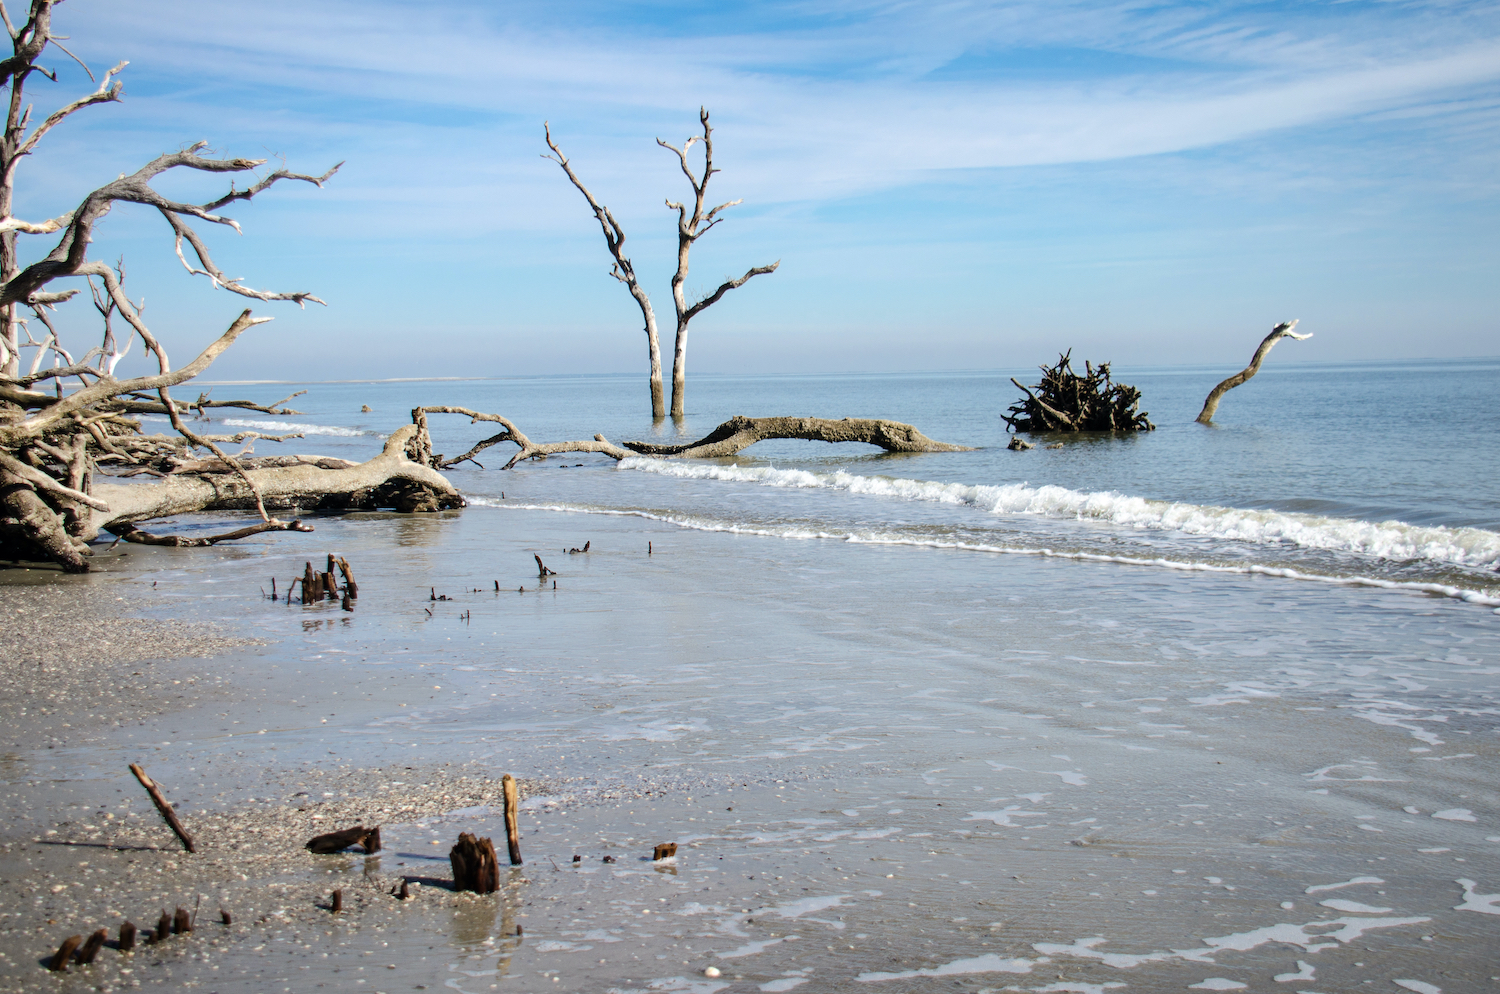 Hunting Island state park with drift wood at the beach